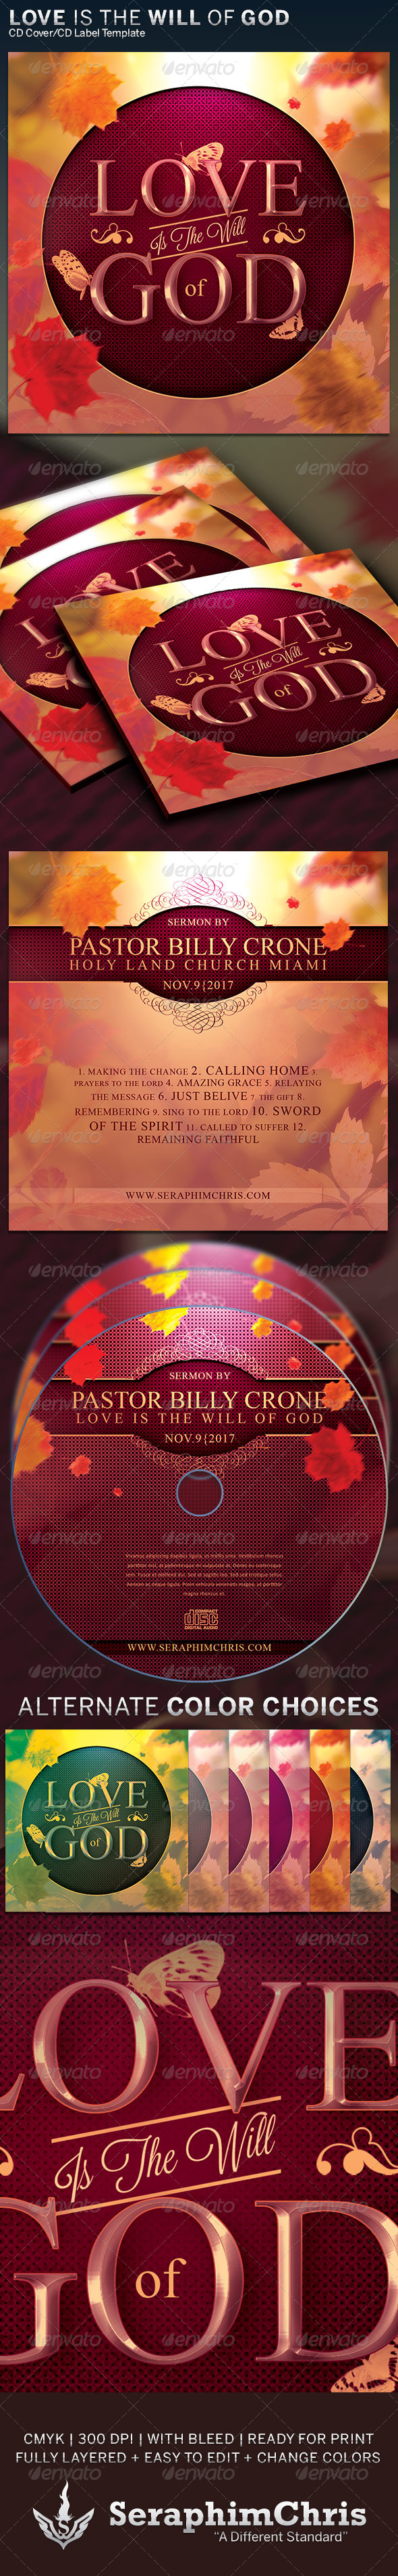 GraphicRiver Love is the Will of God CD Cover Artwork Template 6323819